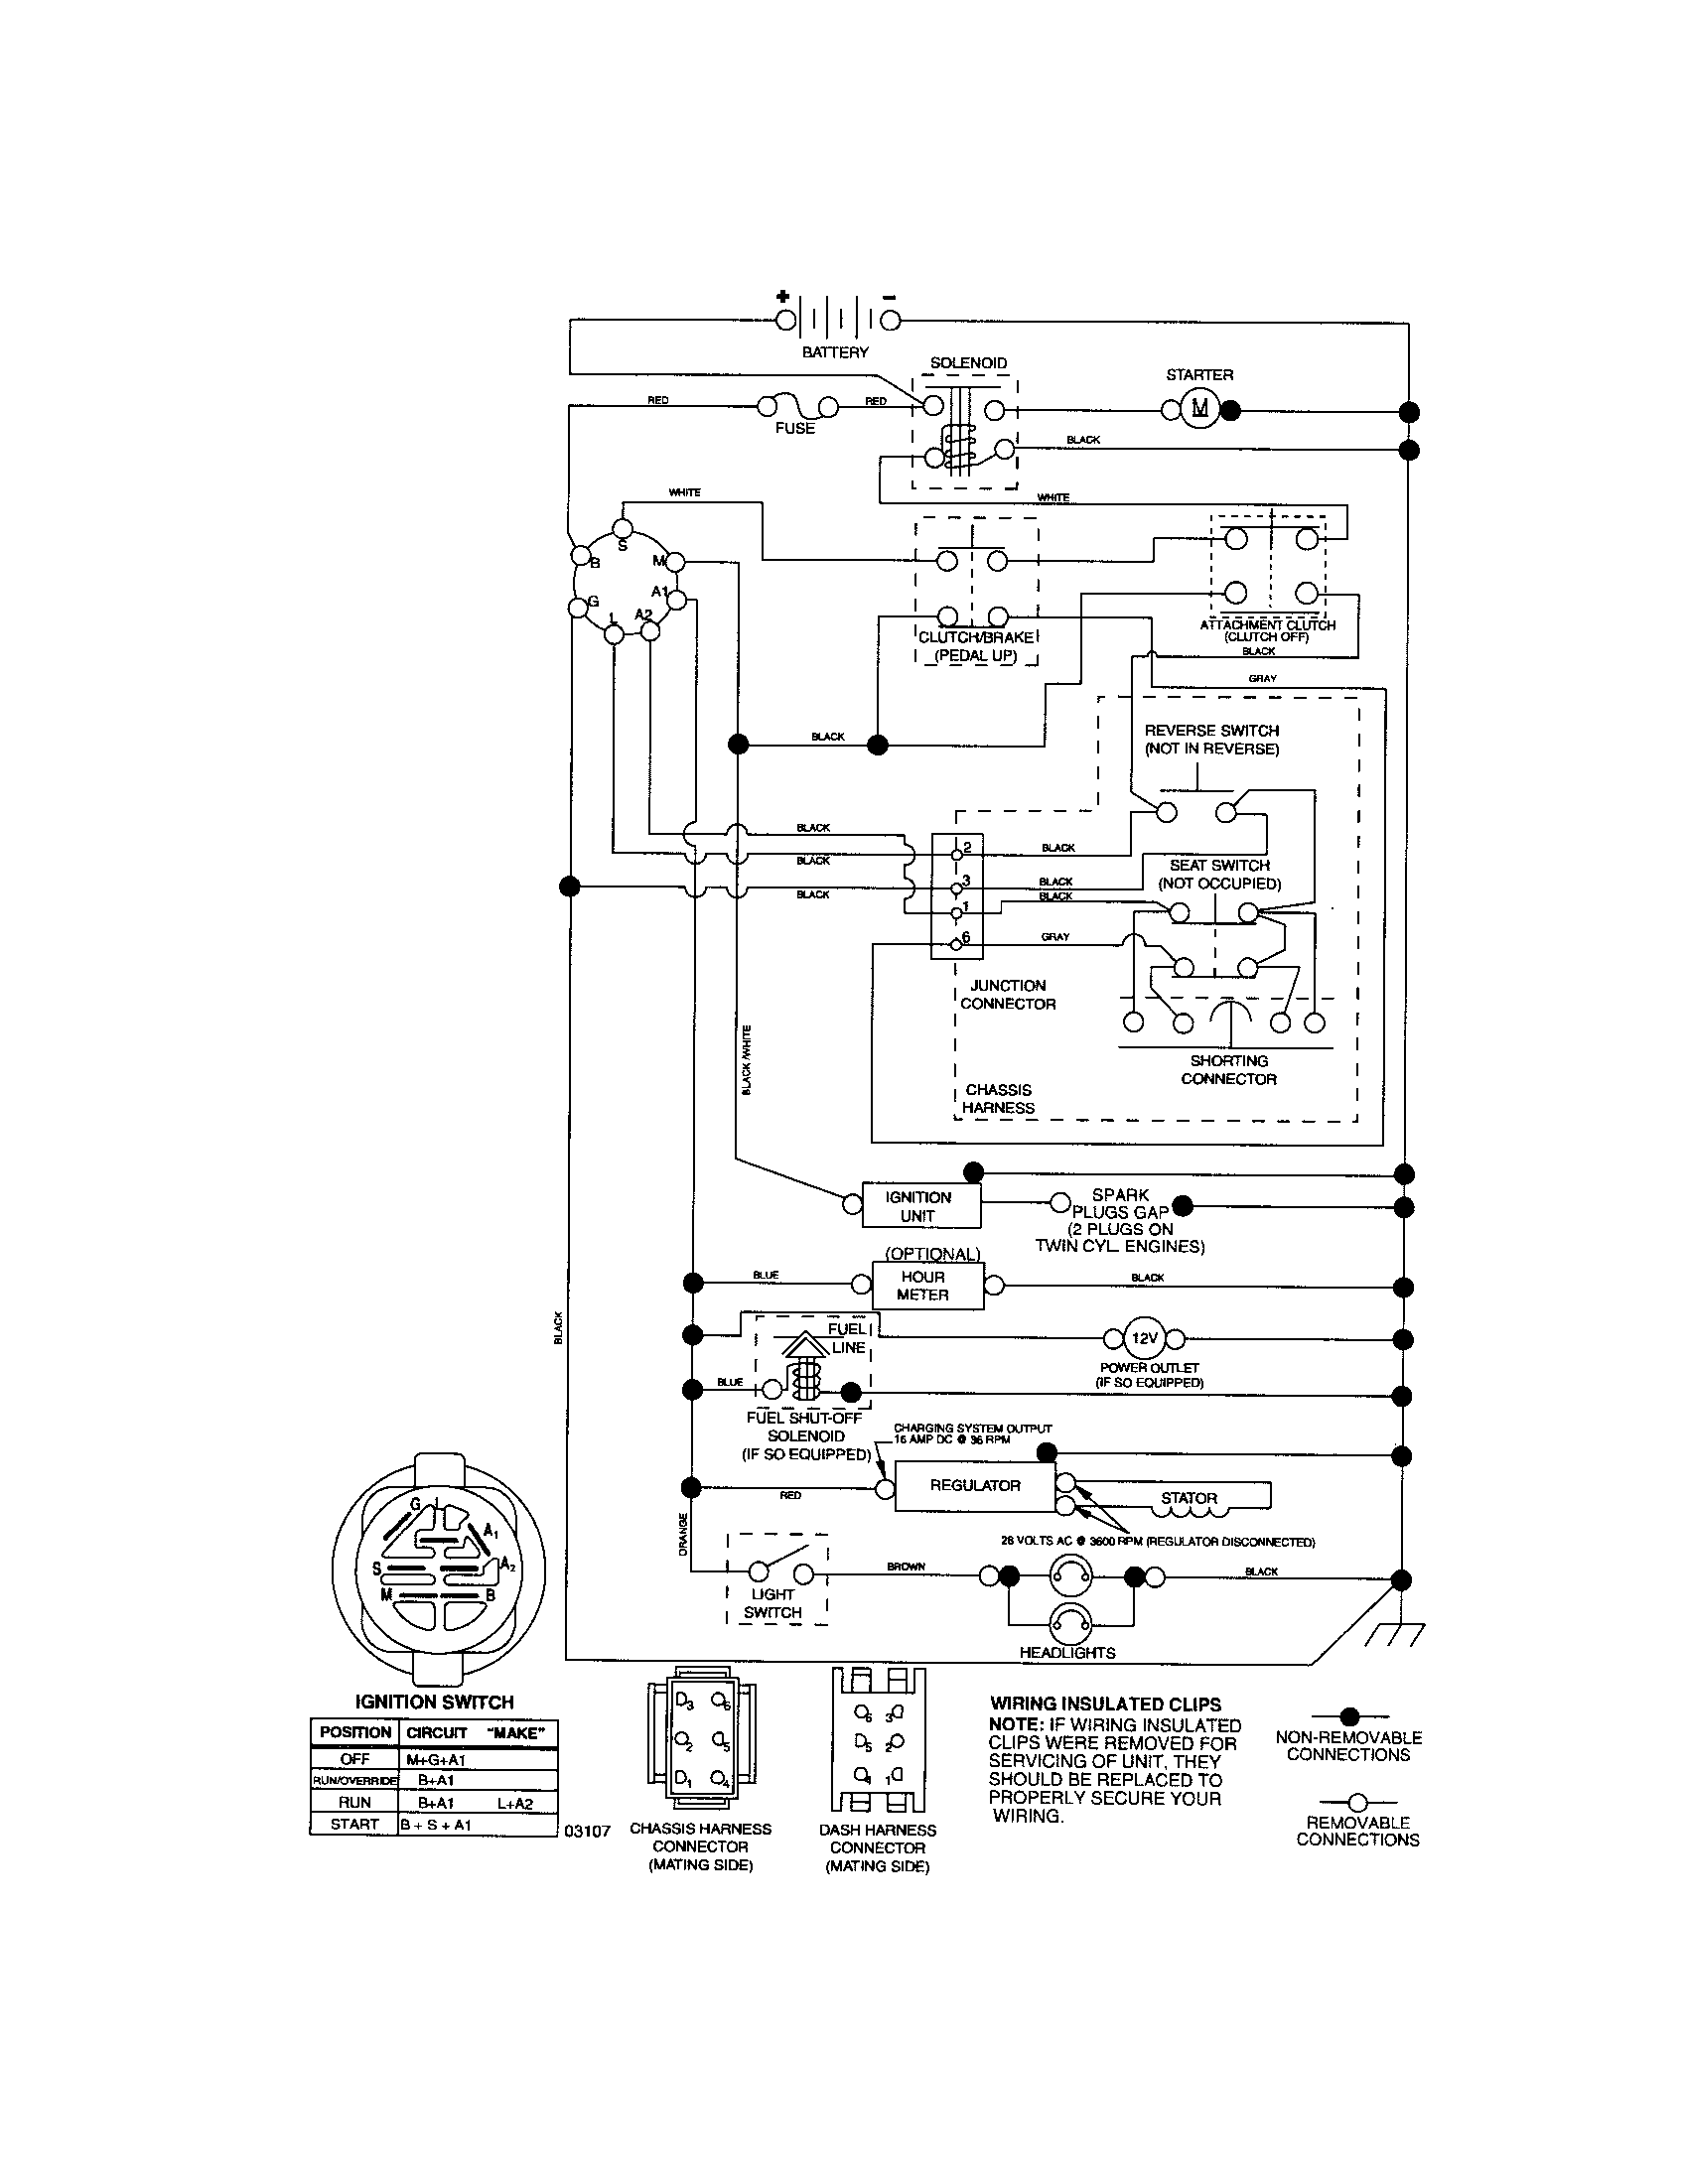 riding mower wire diagram riding image wiring diagram craftsman riding mower electrical diagram wiring diagram on riding mower wire diagram